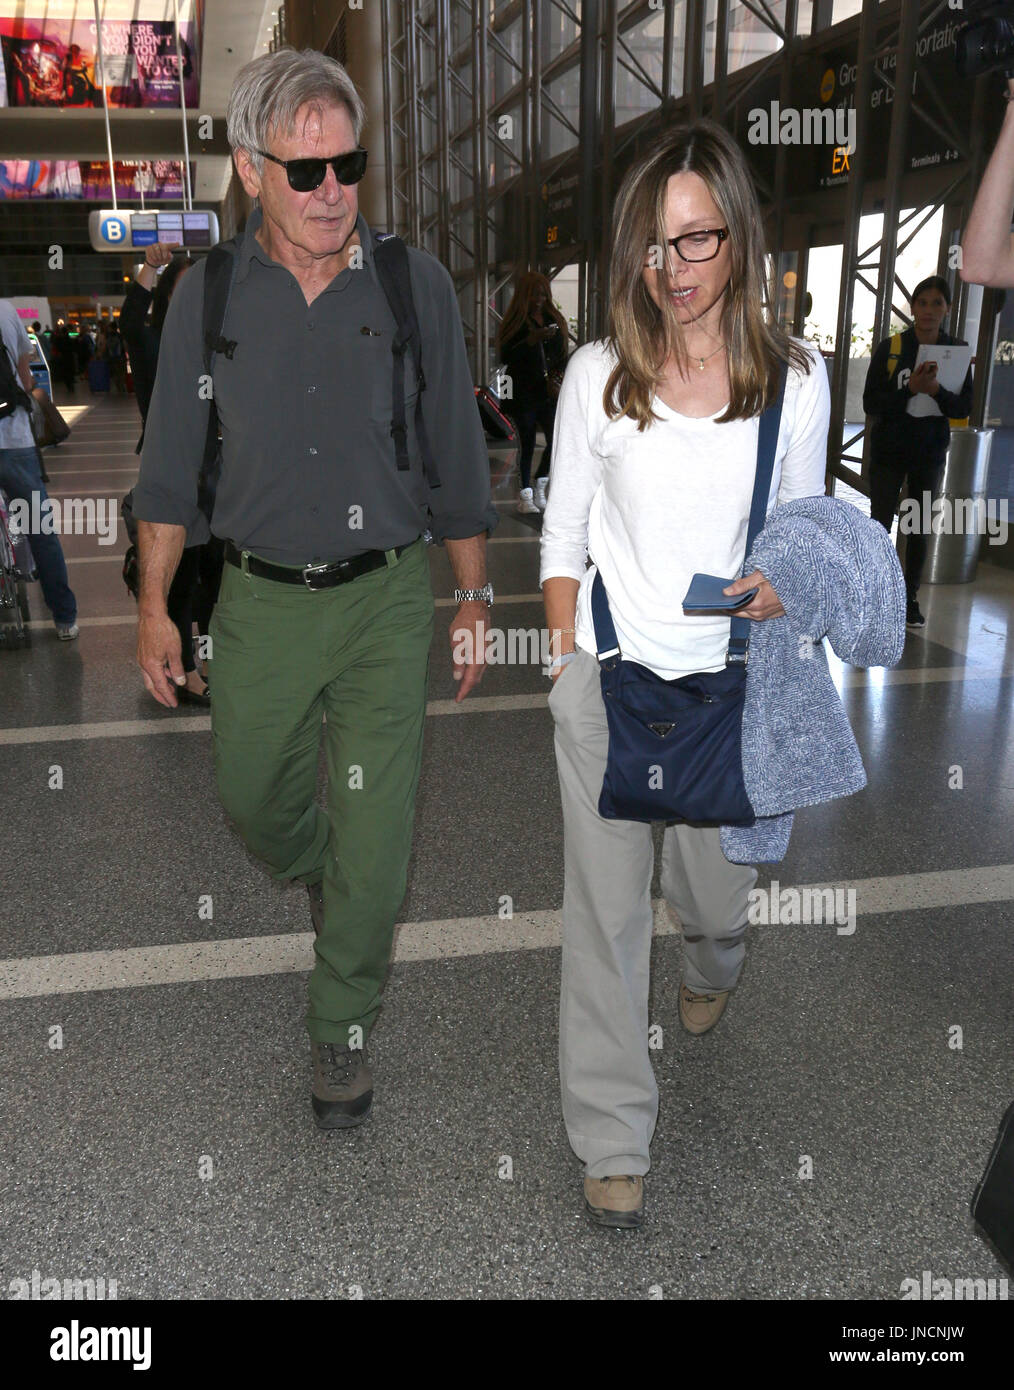 Harrison Ford and Calista Flockhart arrive at Los Angeles